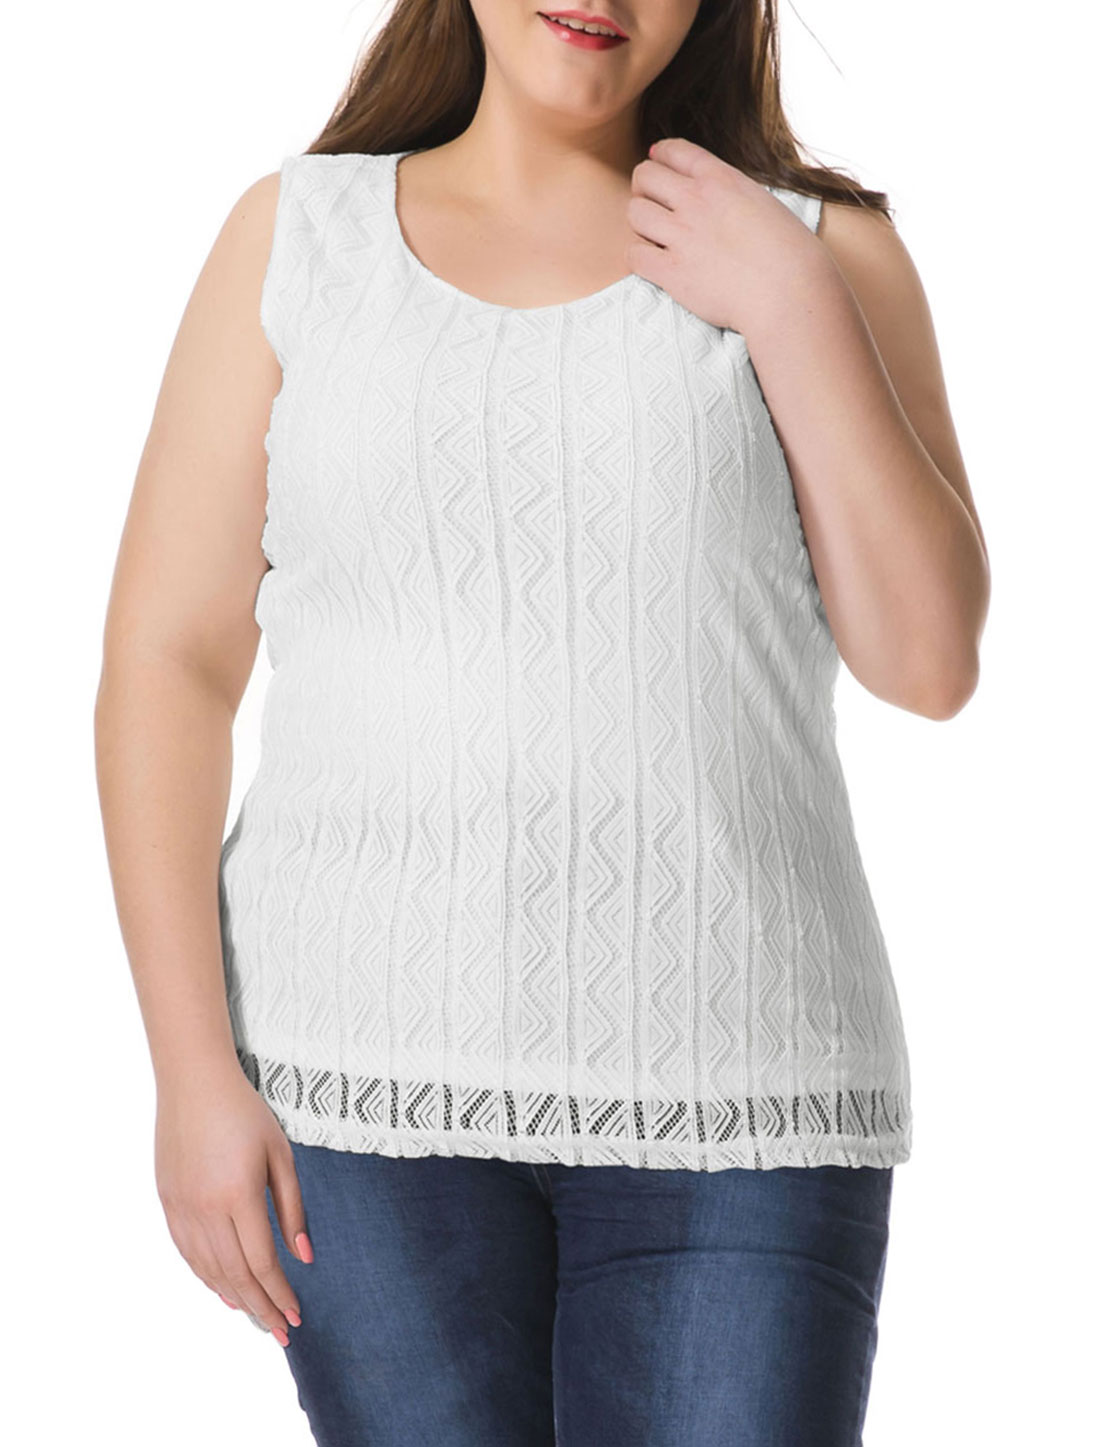 Women Plus Size Hollow Triangle Sleeveless Top White 2X